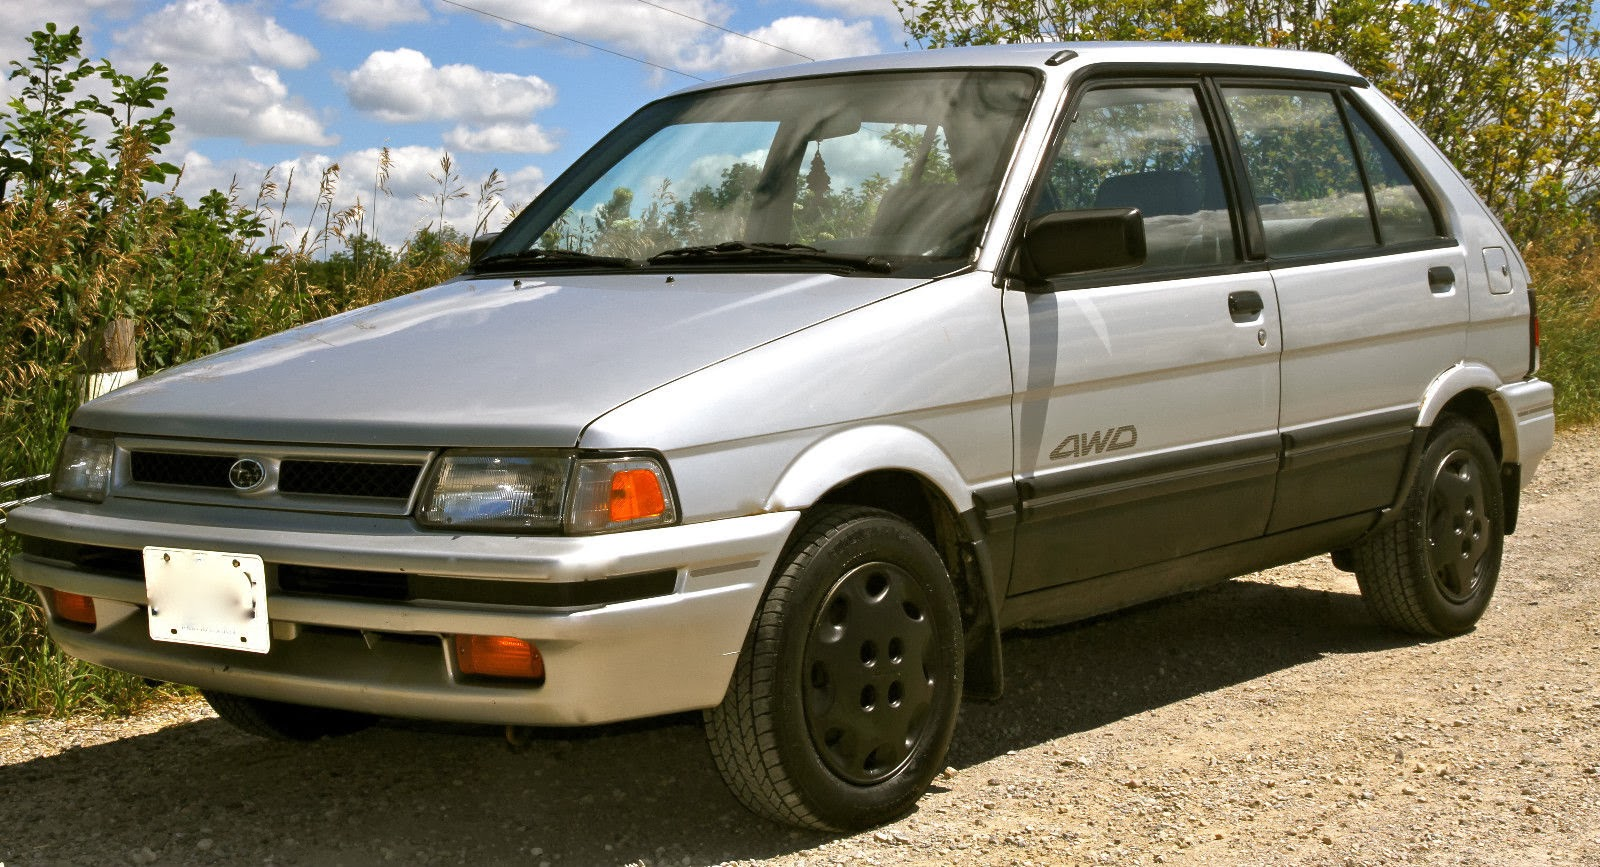 A 1995 subaru justy until today i thought subaru stopped selling the justy in north america 1994